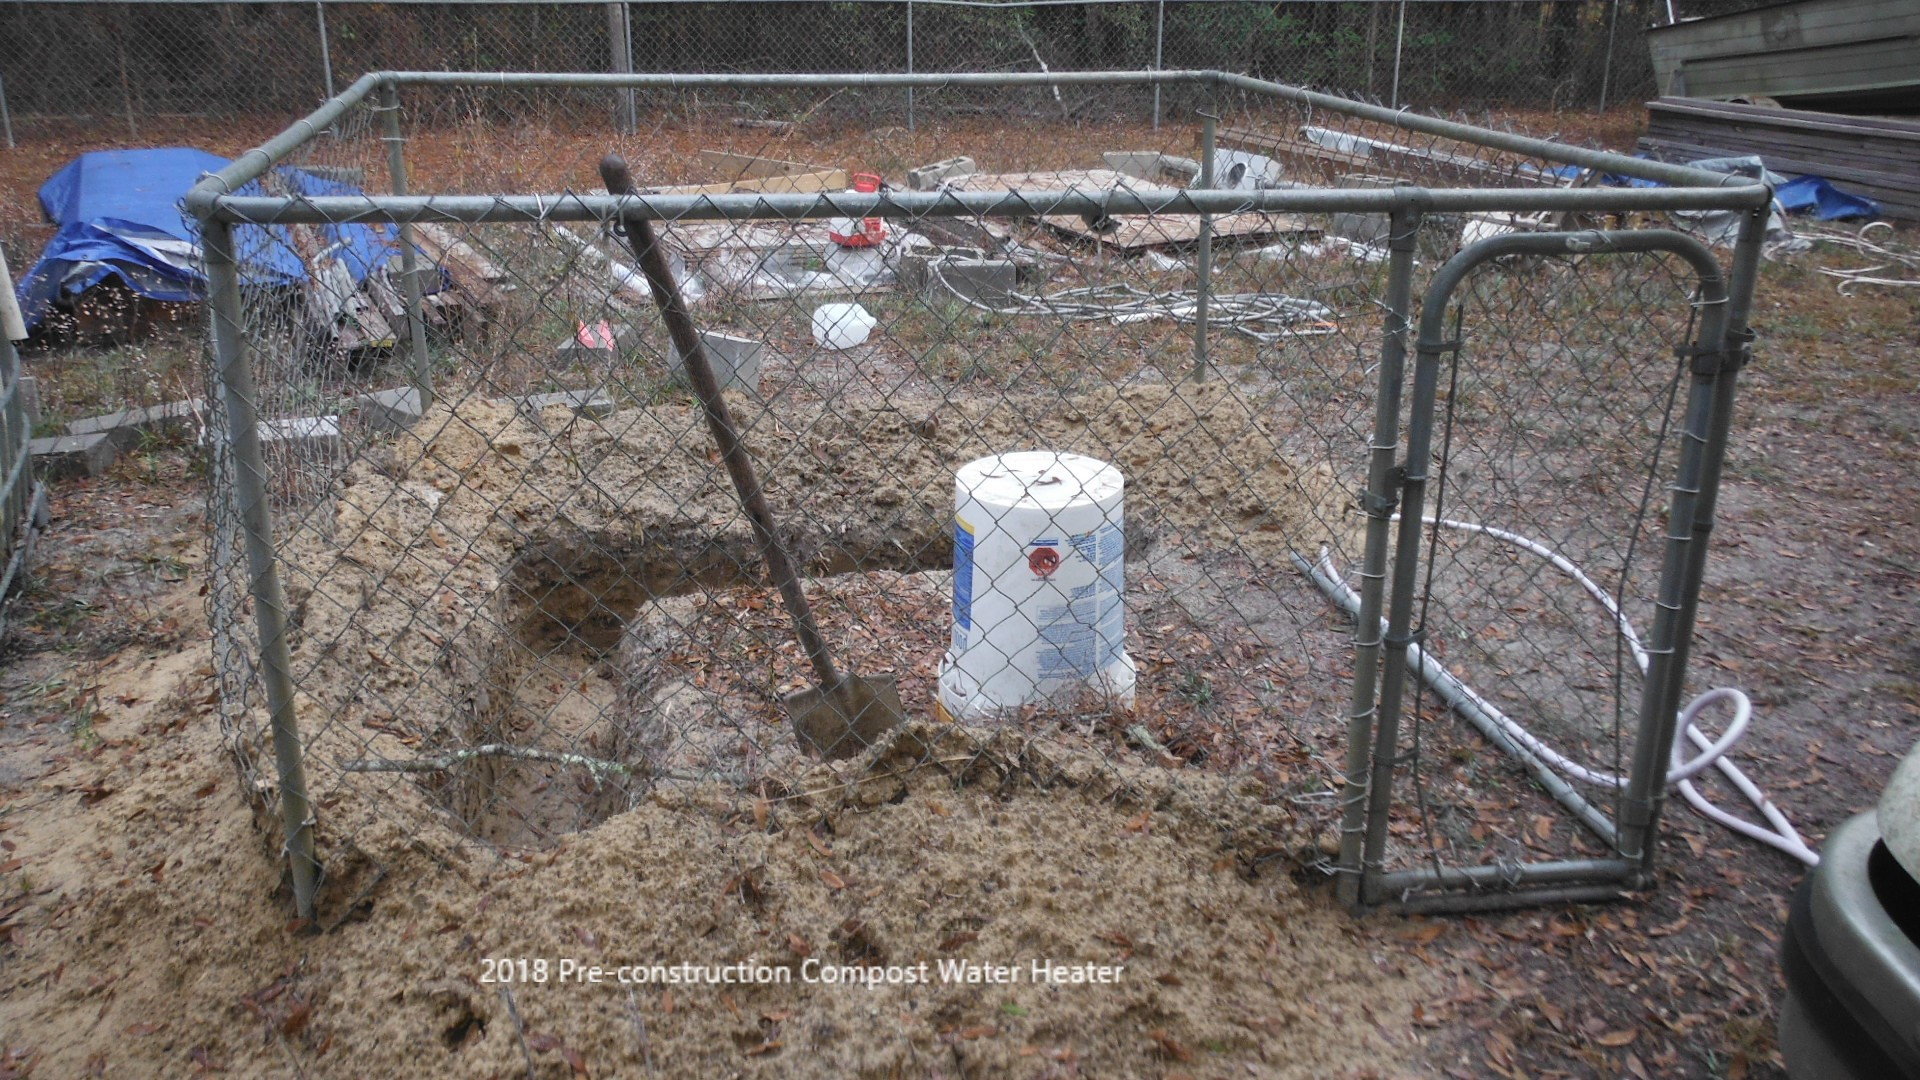 Pre Construction Compost Water Heater.jpg